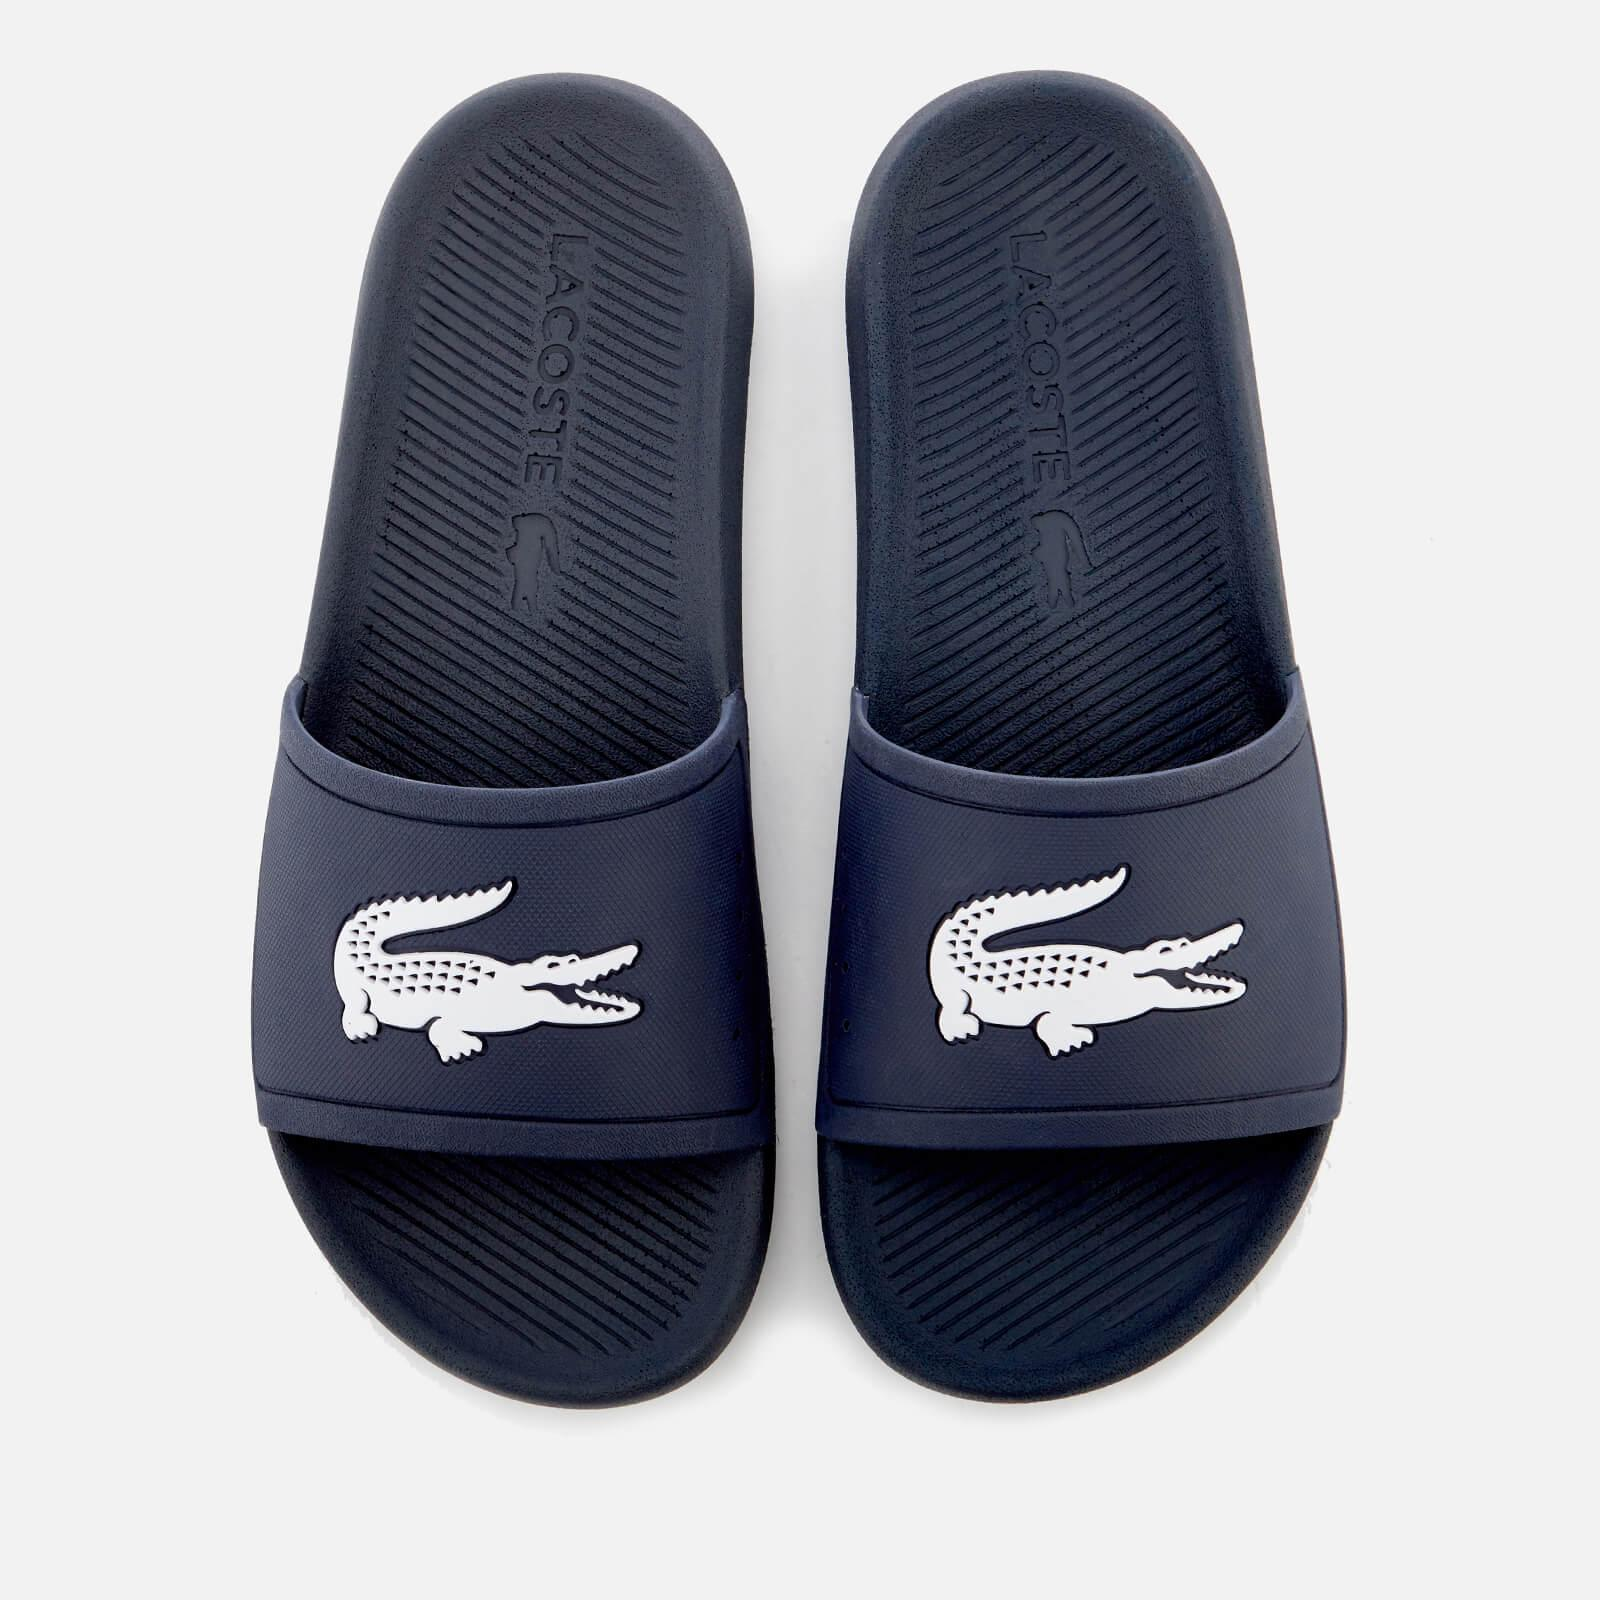 57b2914f68e Lyst - Lacoste Croco Slide 119 1 Sandals in Blue for Men